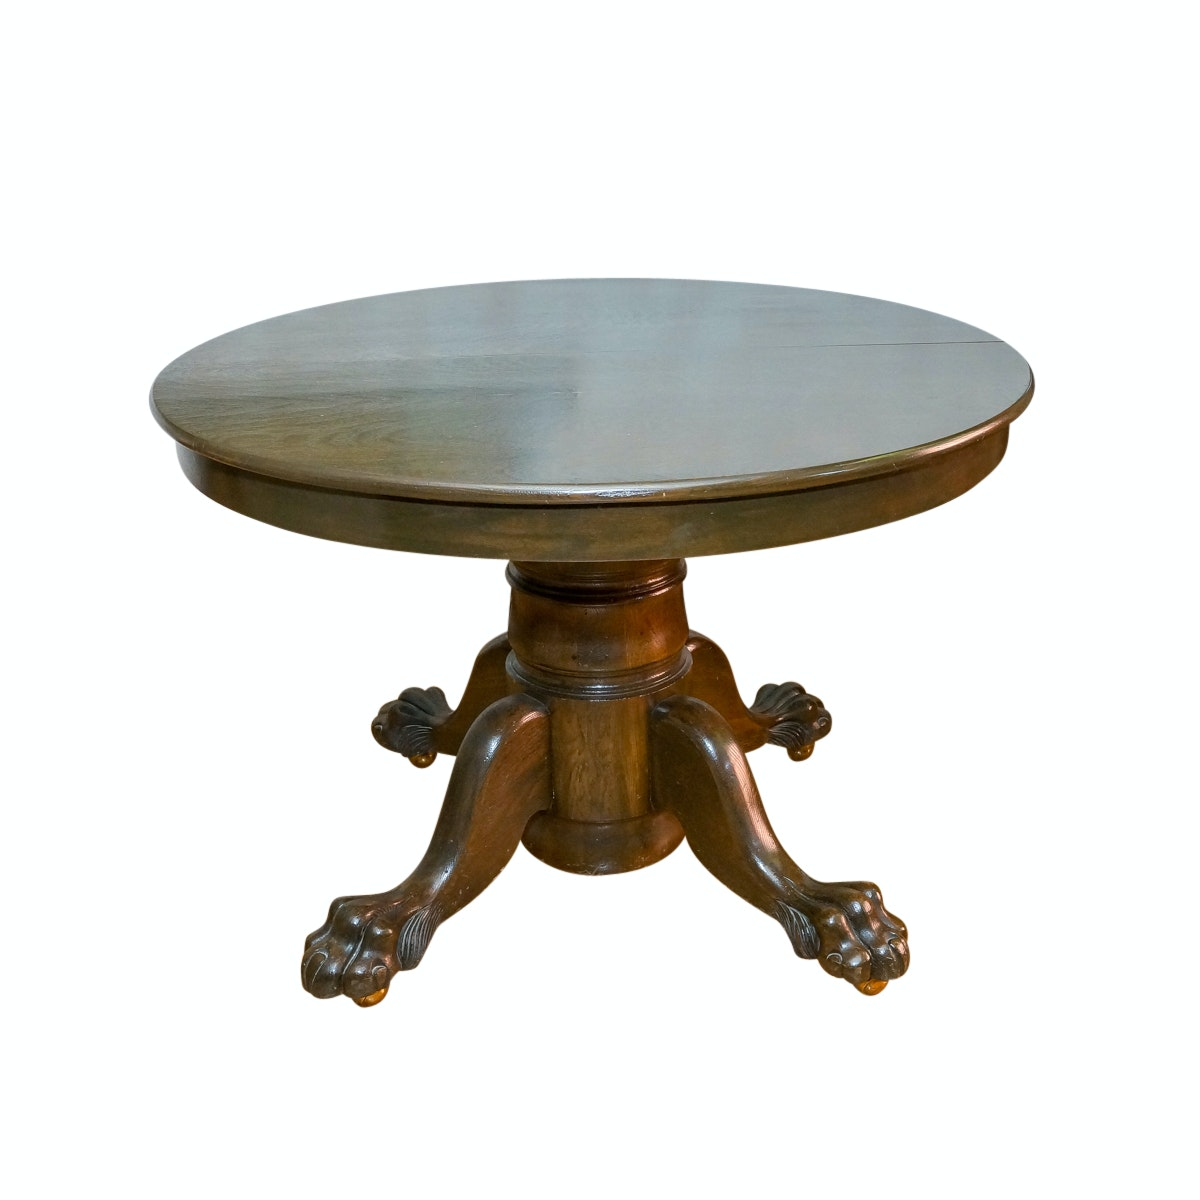 Vintage Pedestal Table With Extension Leaves ...